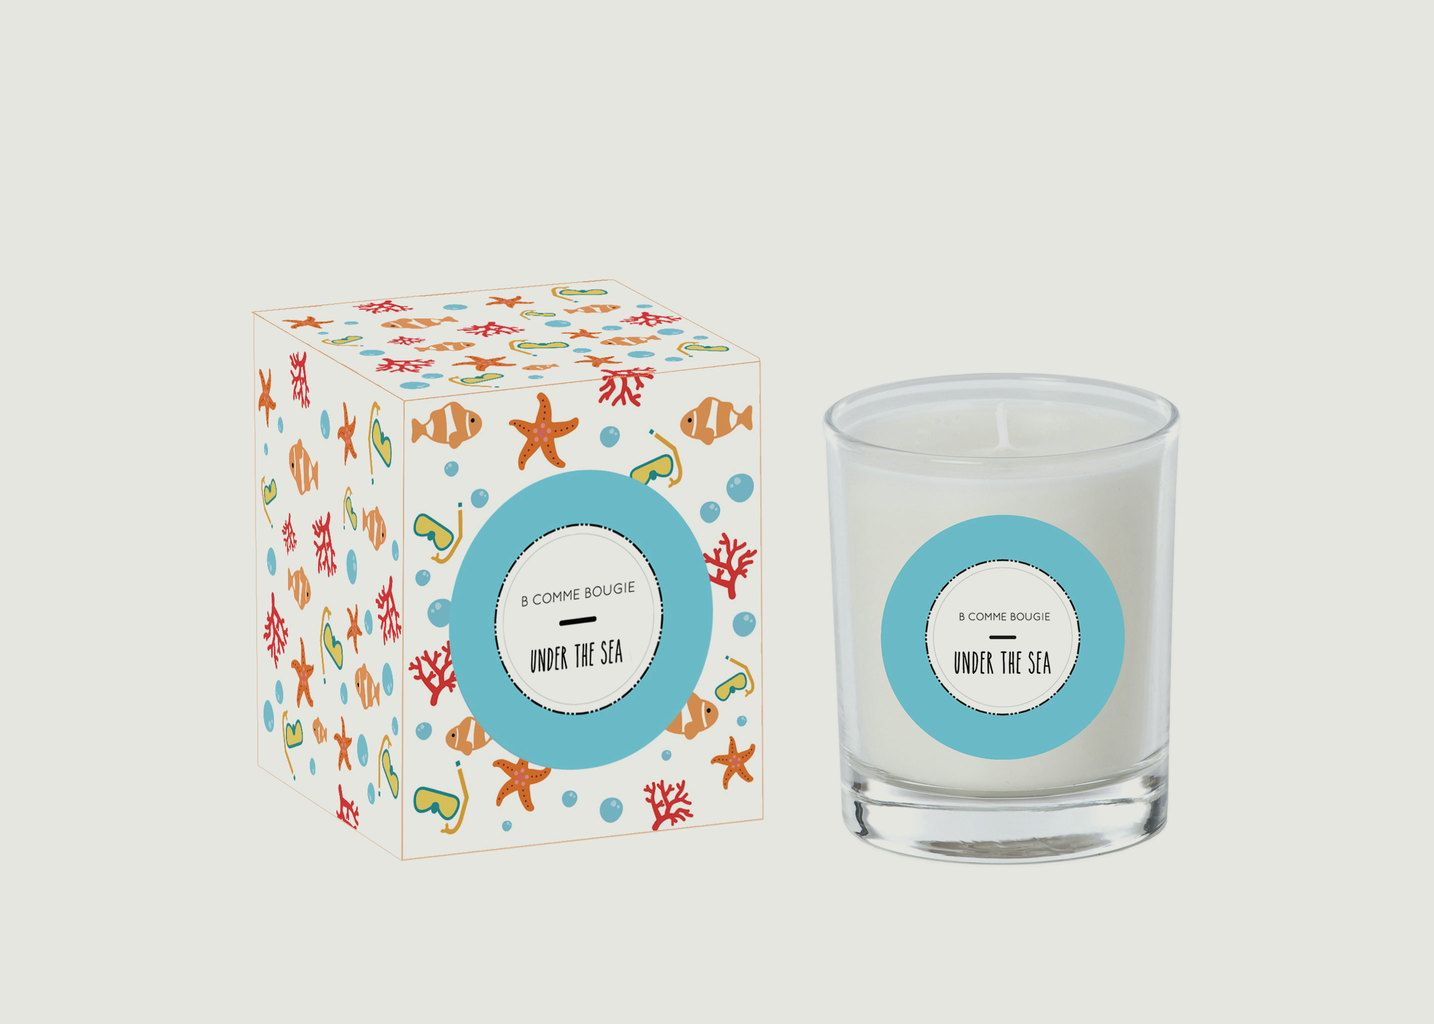 Bougie Under The Sea - B comme Bougie